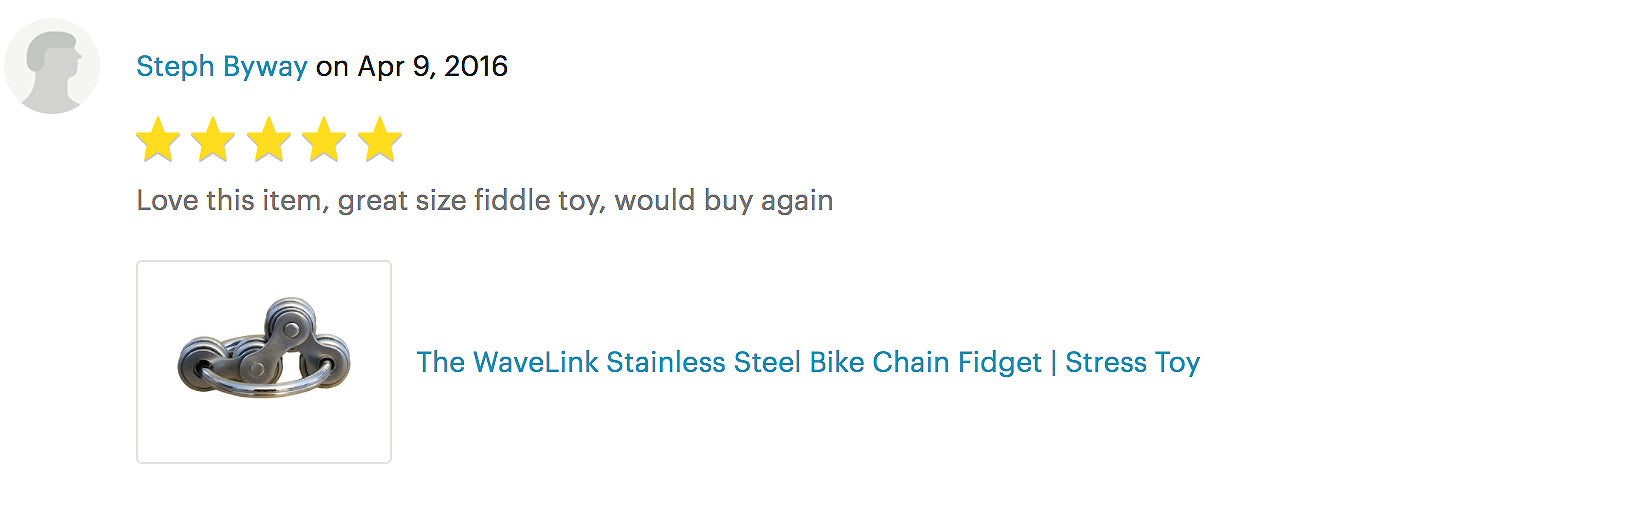 WaveLink Stainless Steel Bike Chain Fidget | Stress Toy product review